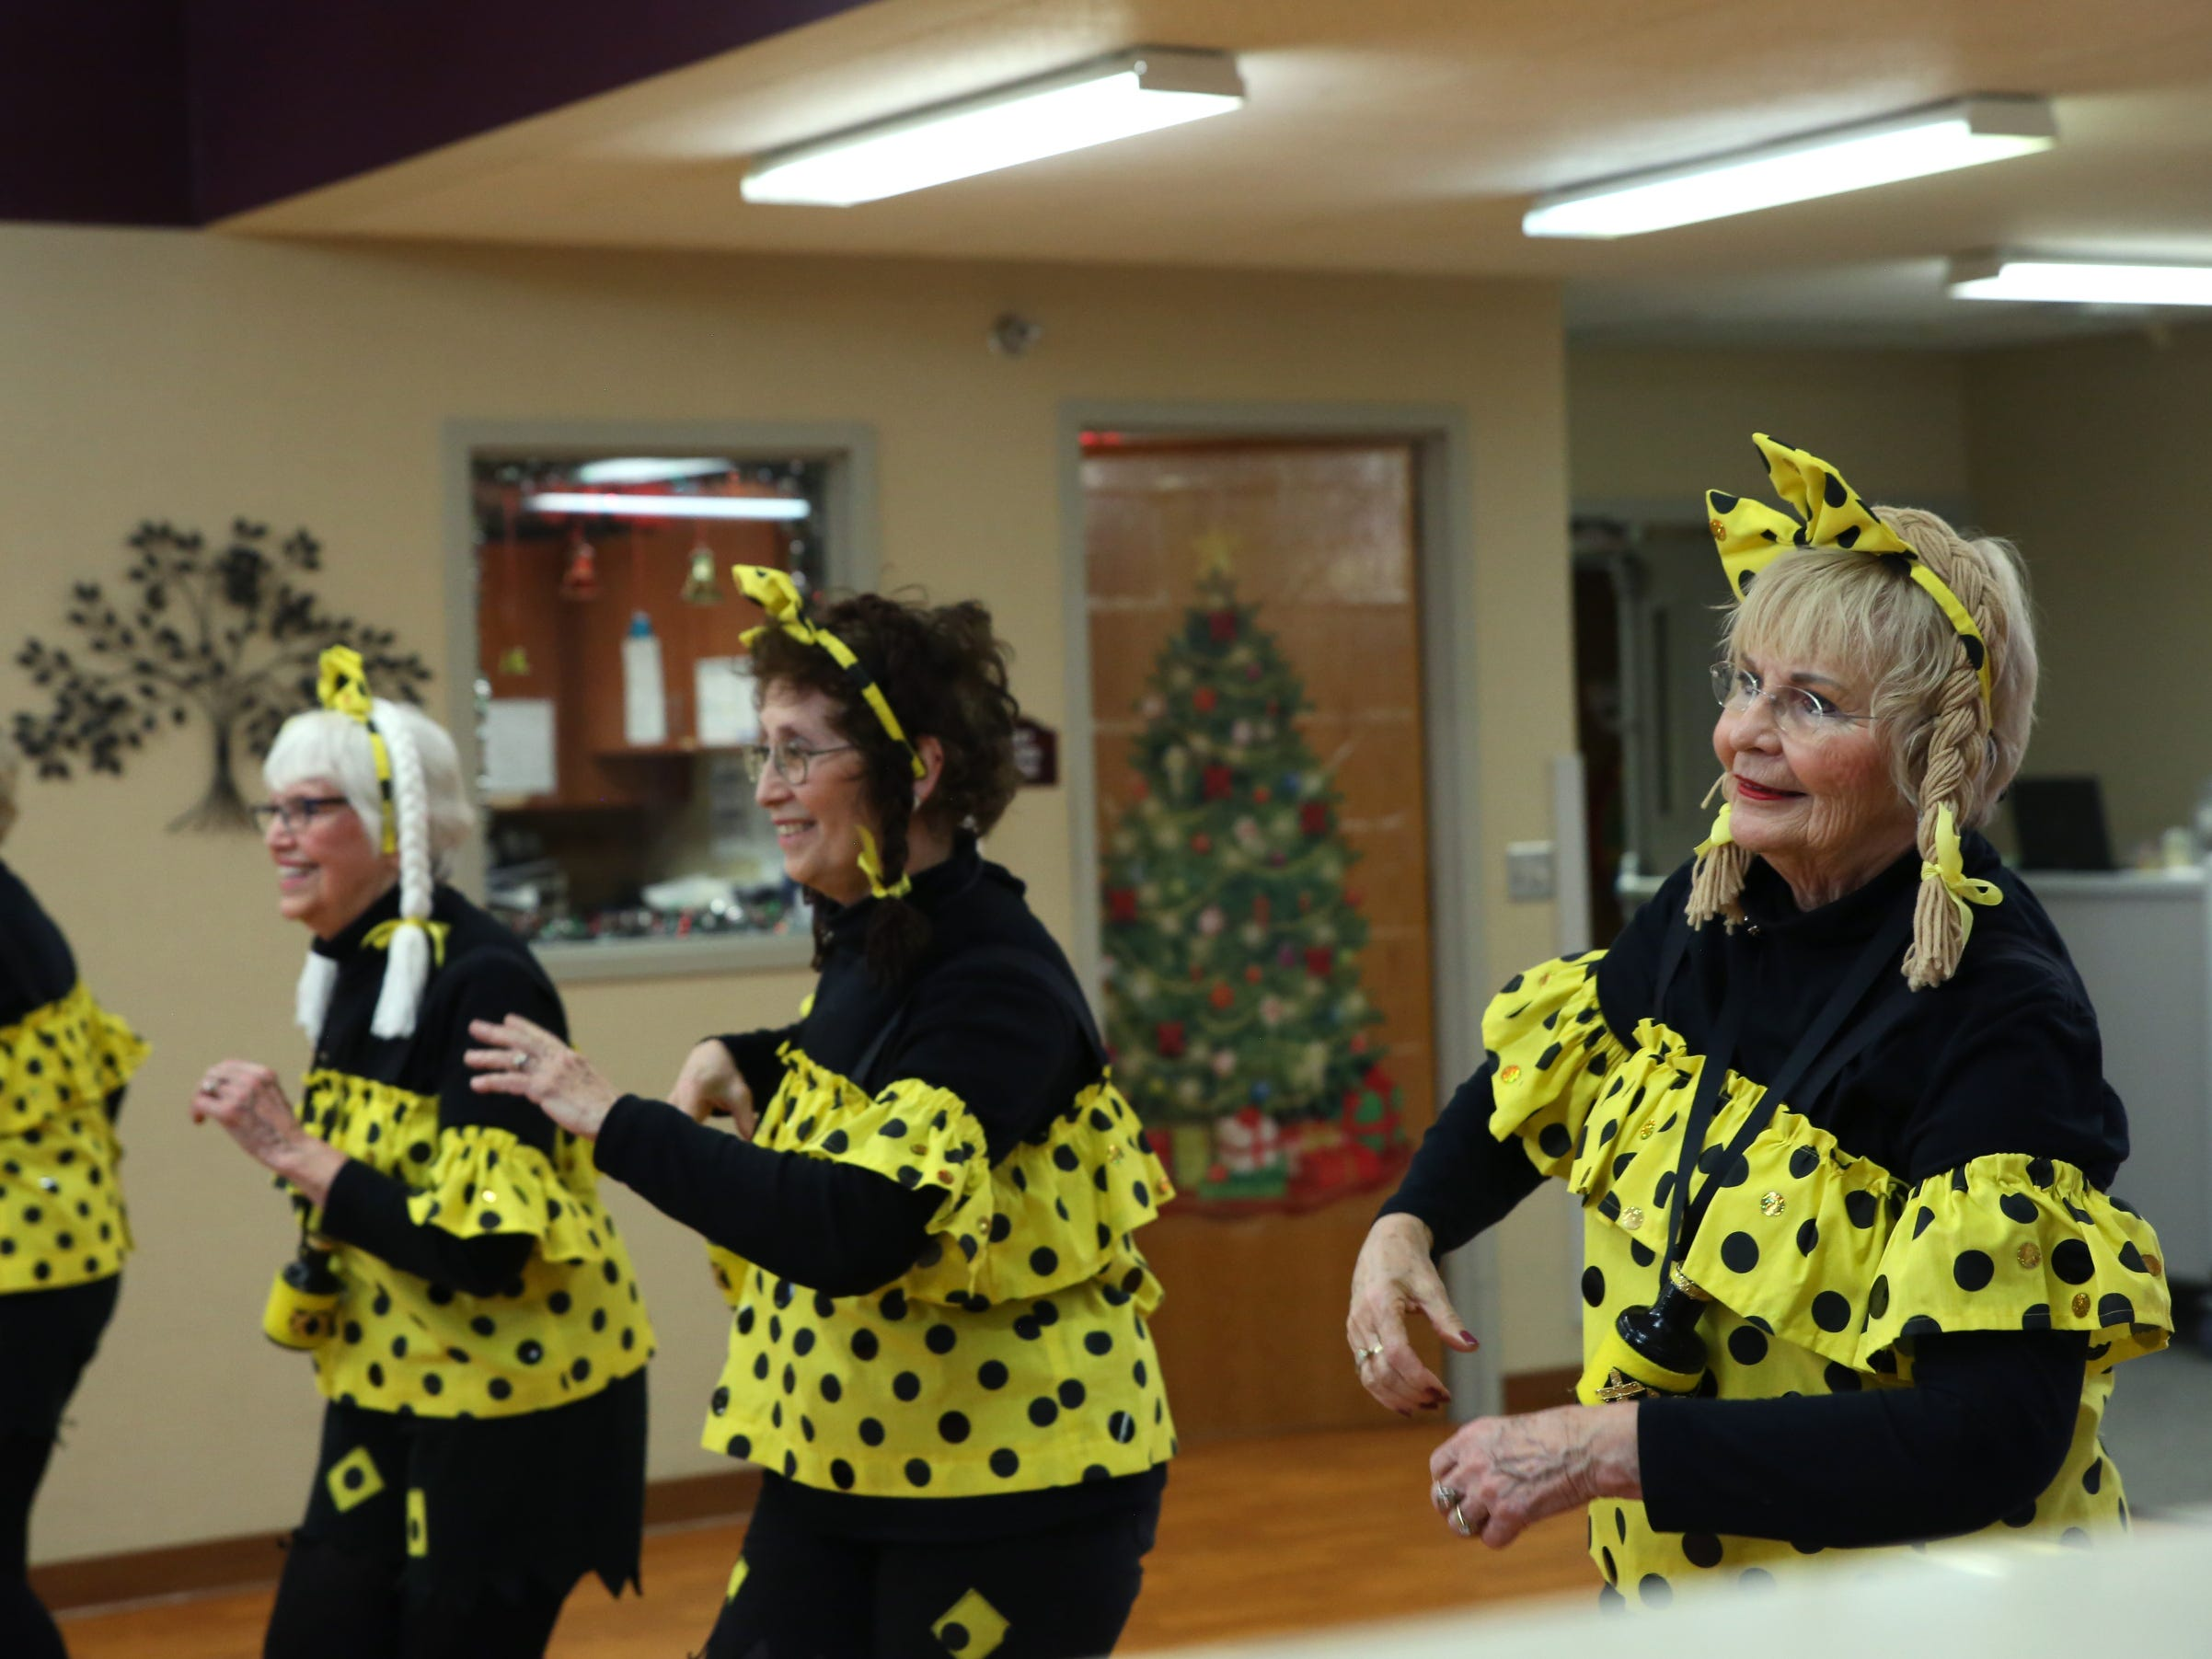 The Dancing Divas group performs at Good Samaritan Society-Luther Manor in Sioux Falls, S.D., Friday, Dec. 14, 2018.